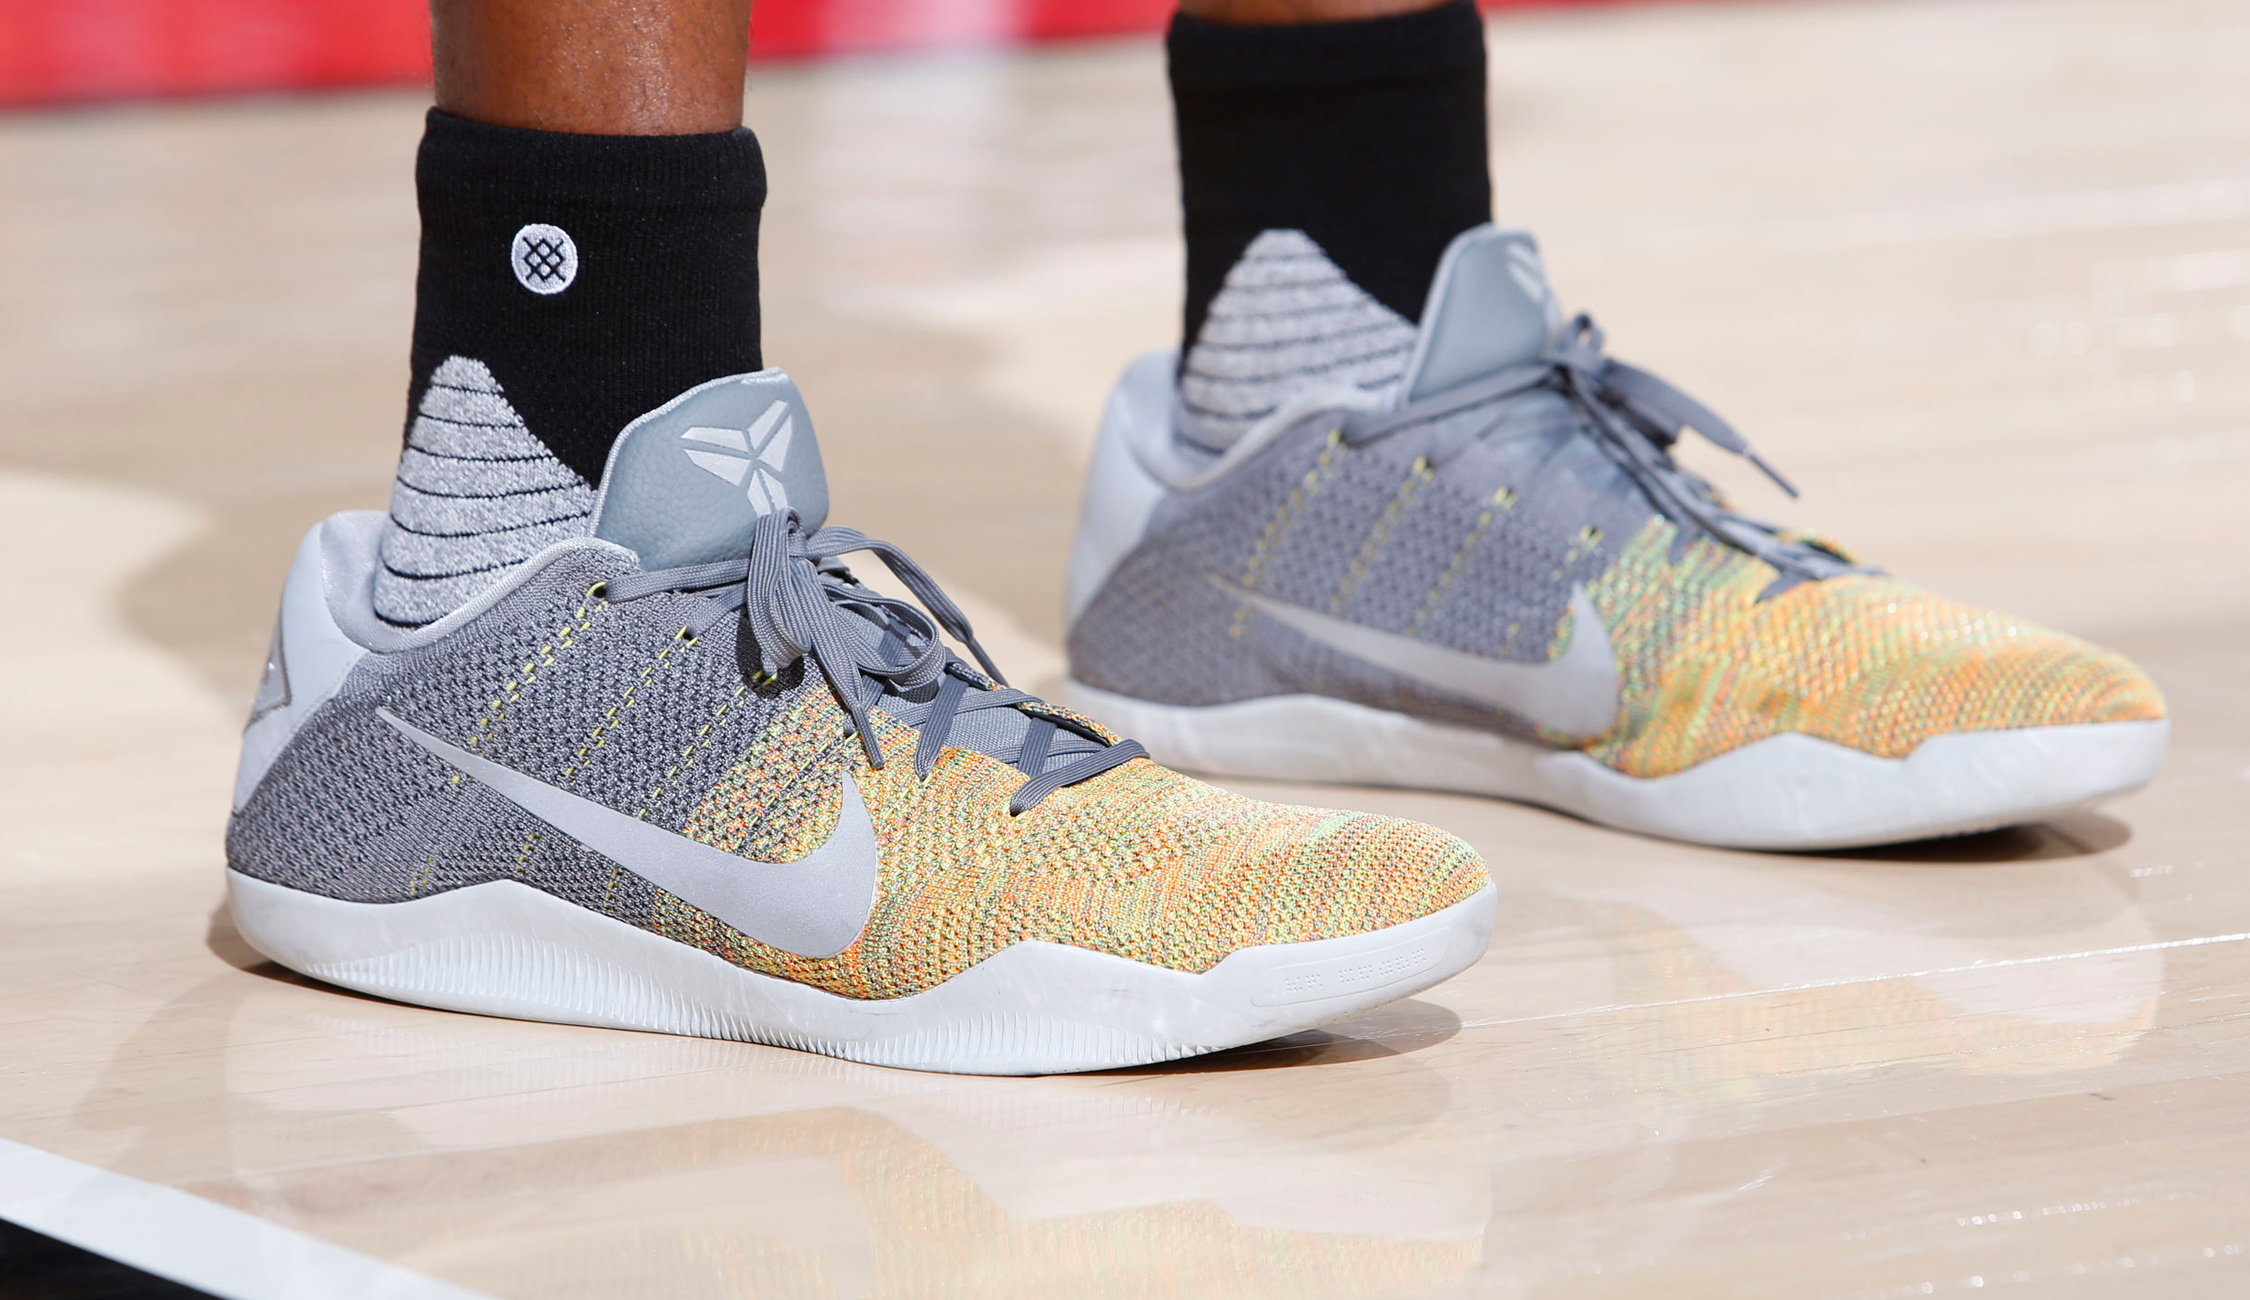 Adidas Crazy Explosive Shoes On Someone